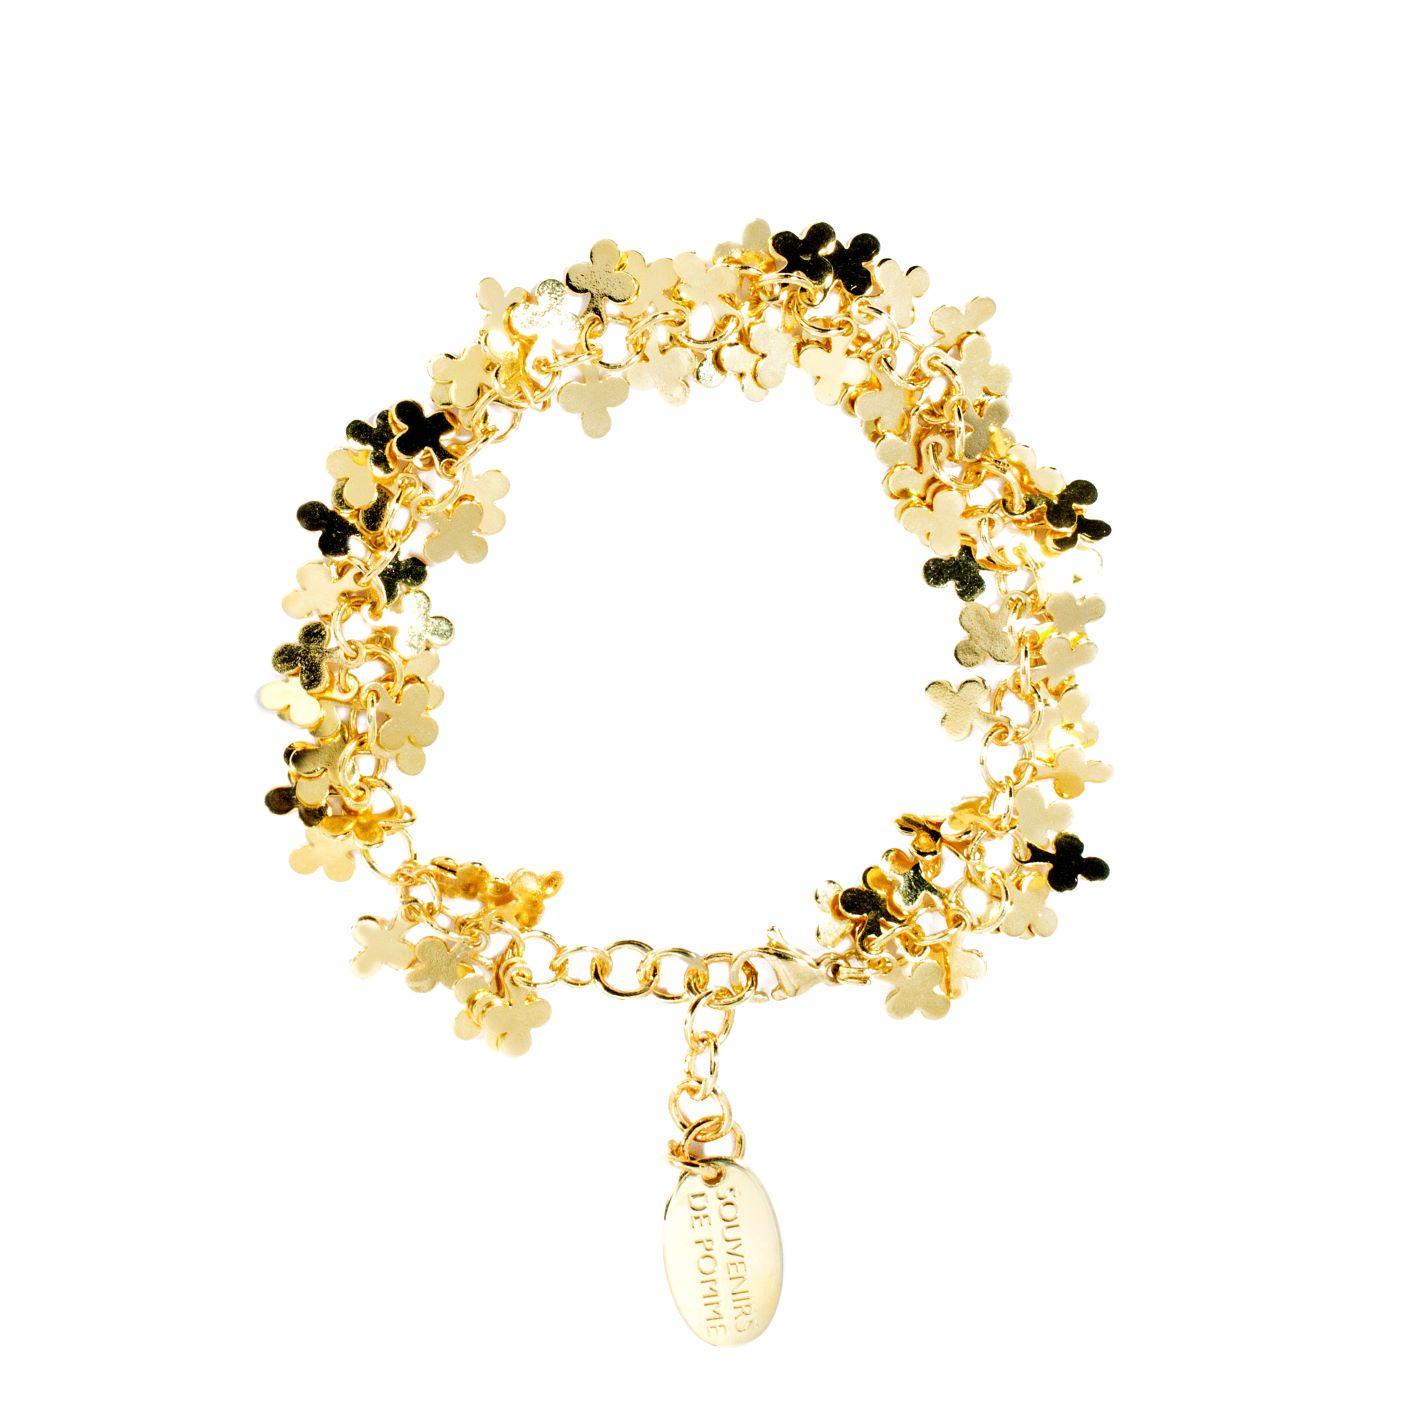 Chain Clubs gold bracelet